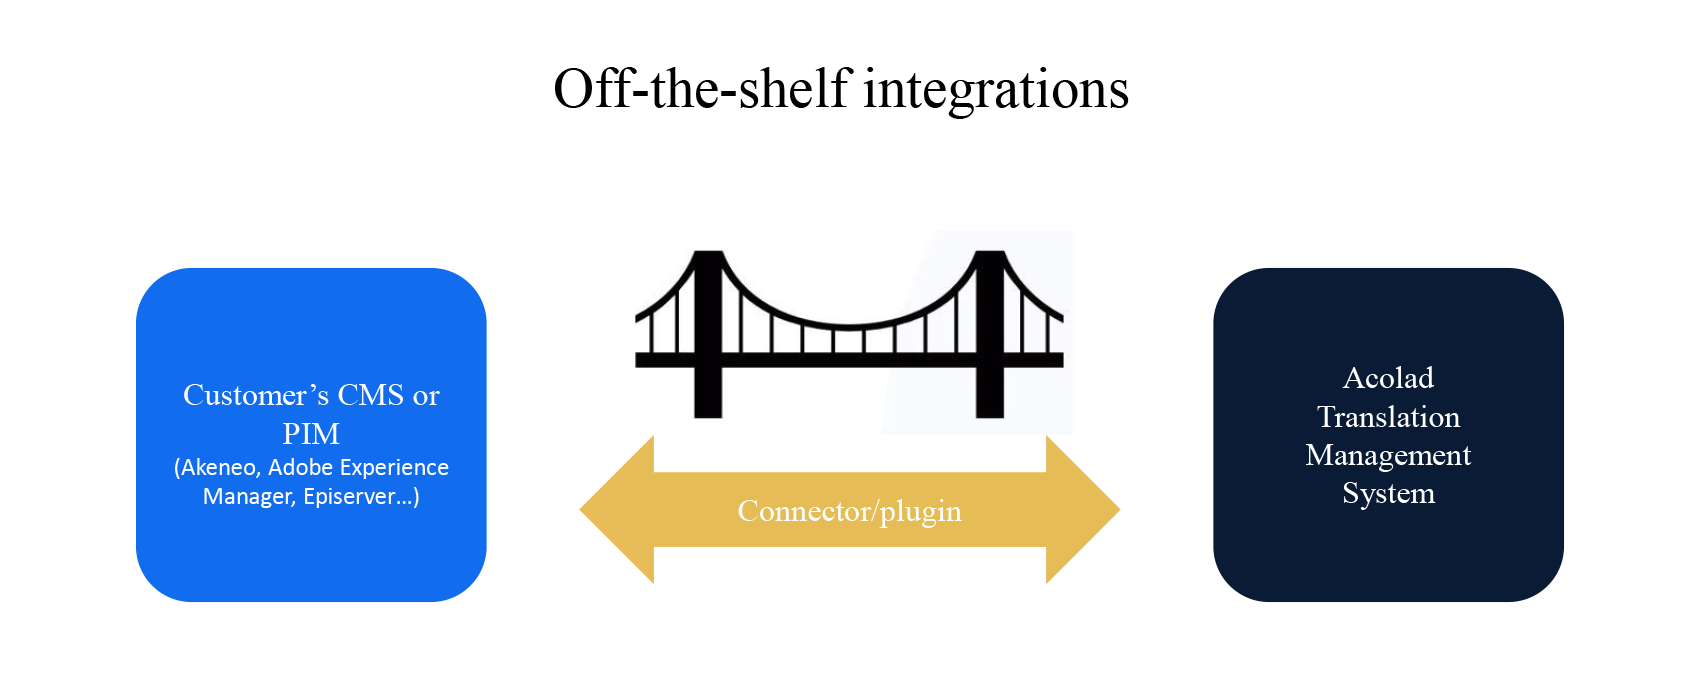 Off the shelf integrations